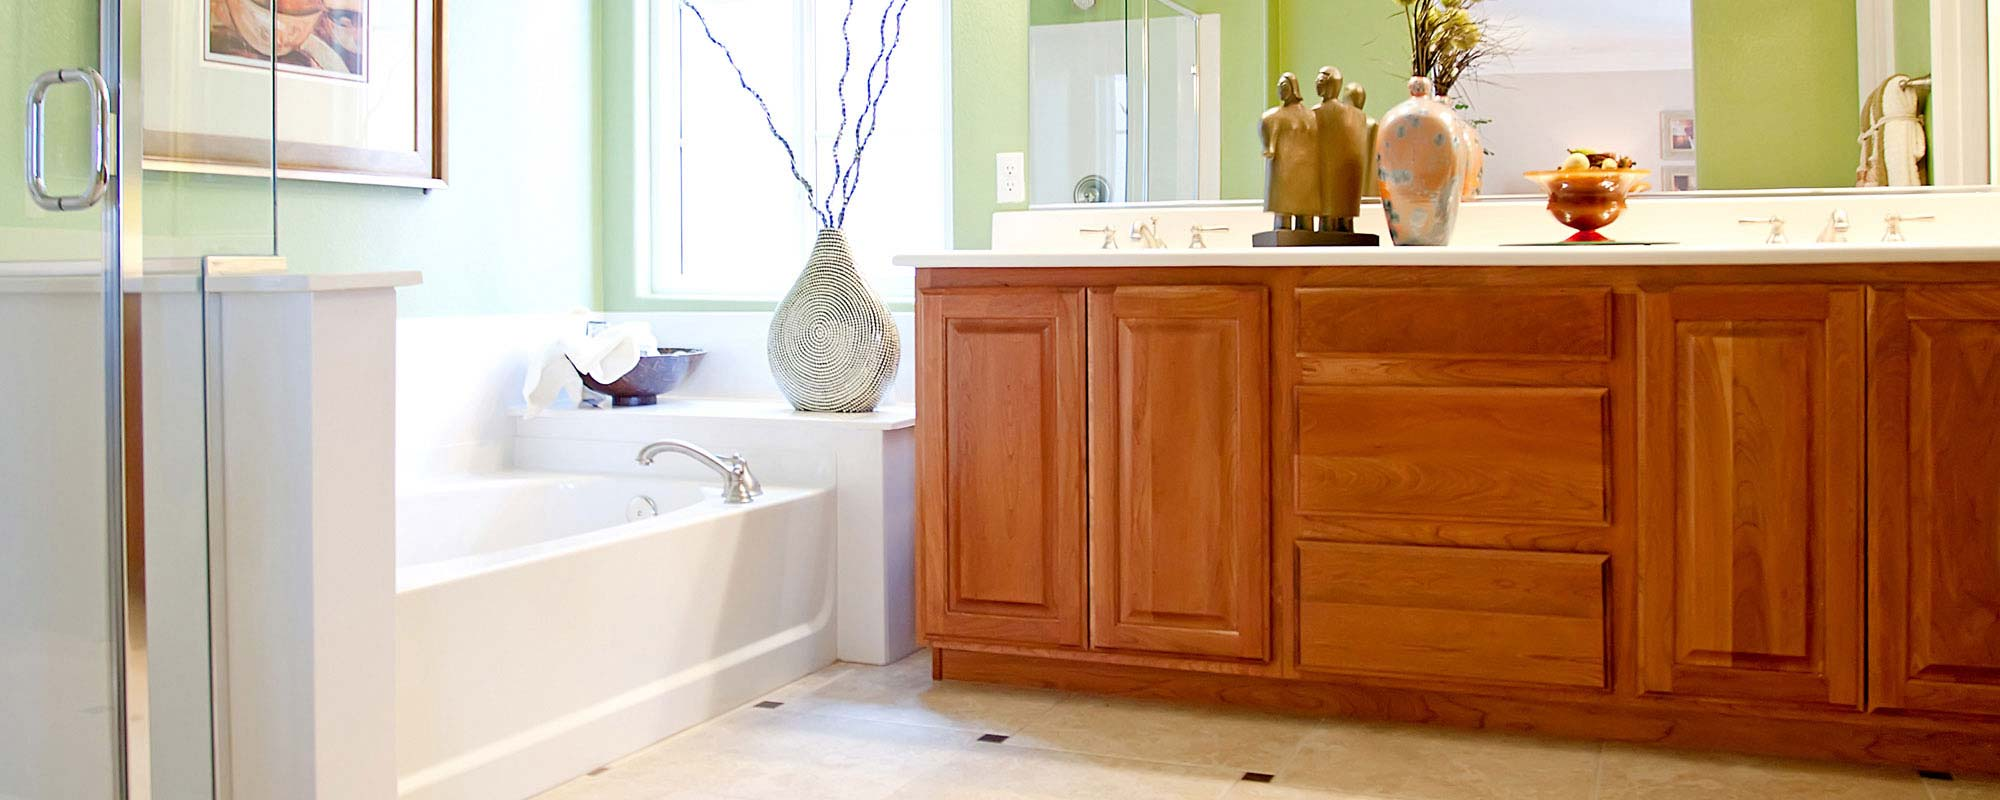 Greenville Remodeling Contractors